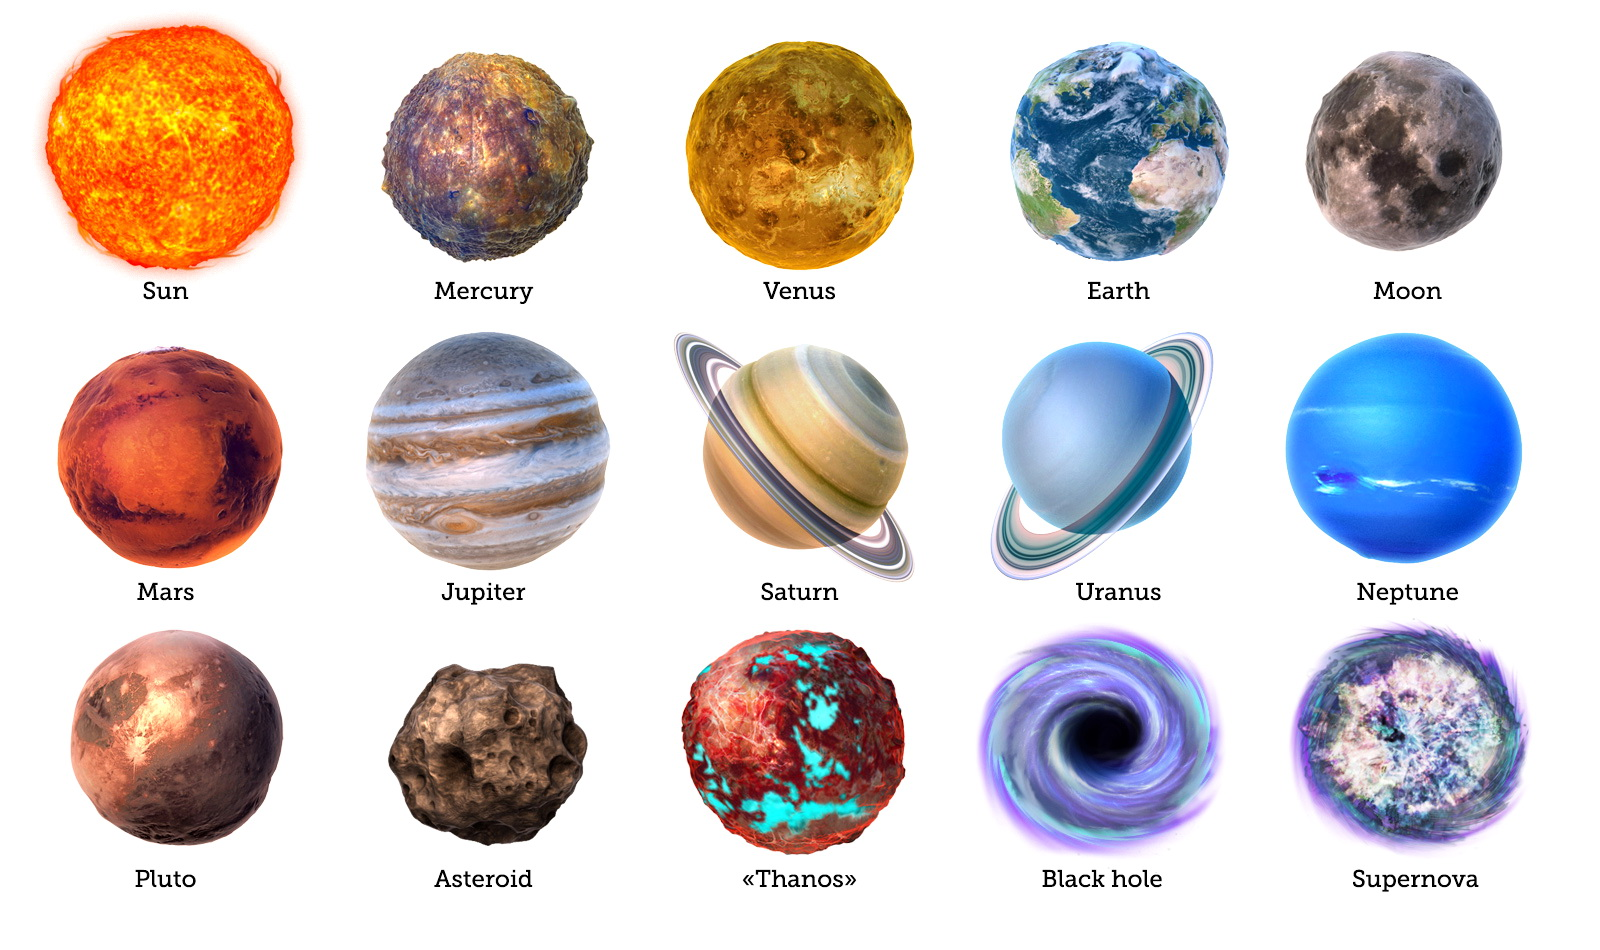 2-bumpy_planets_icon_pack_by_zairaam